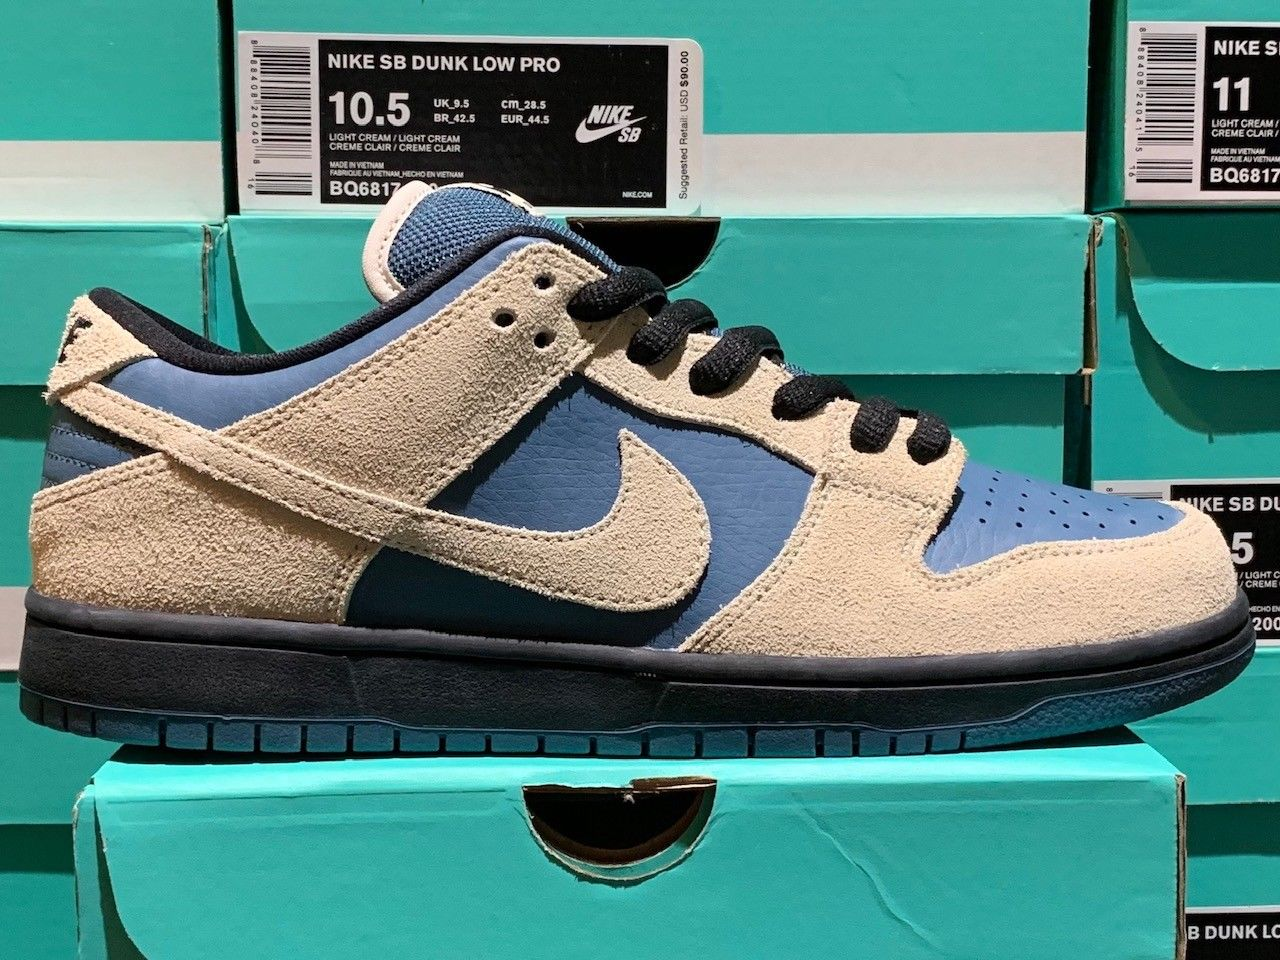 cf8c1c727fe Where to Buy Nike SB Dunk Low Light Cream Blue